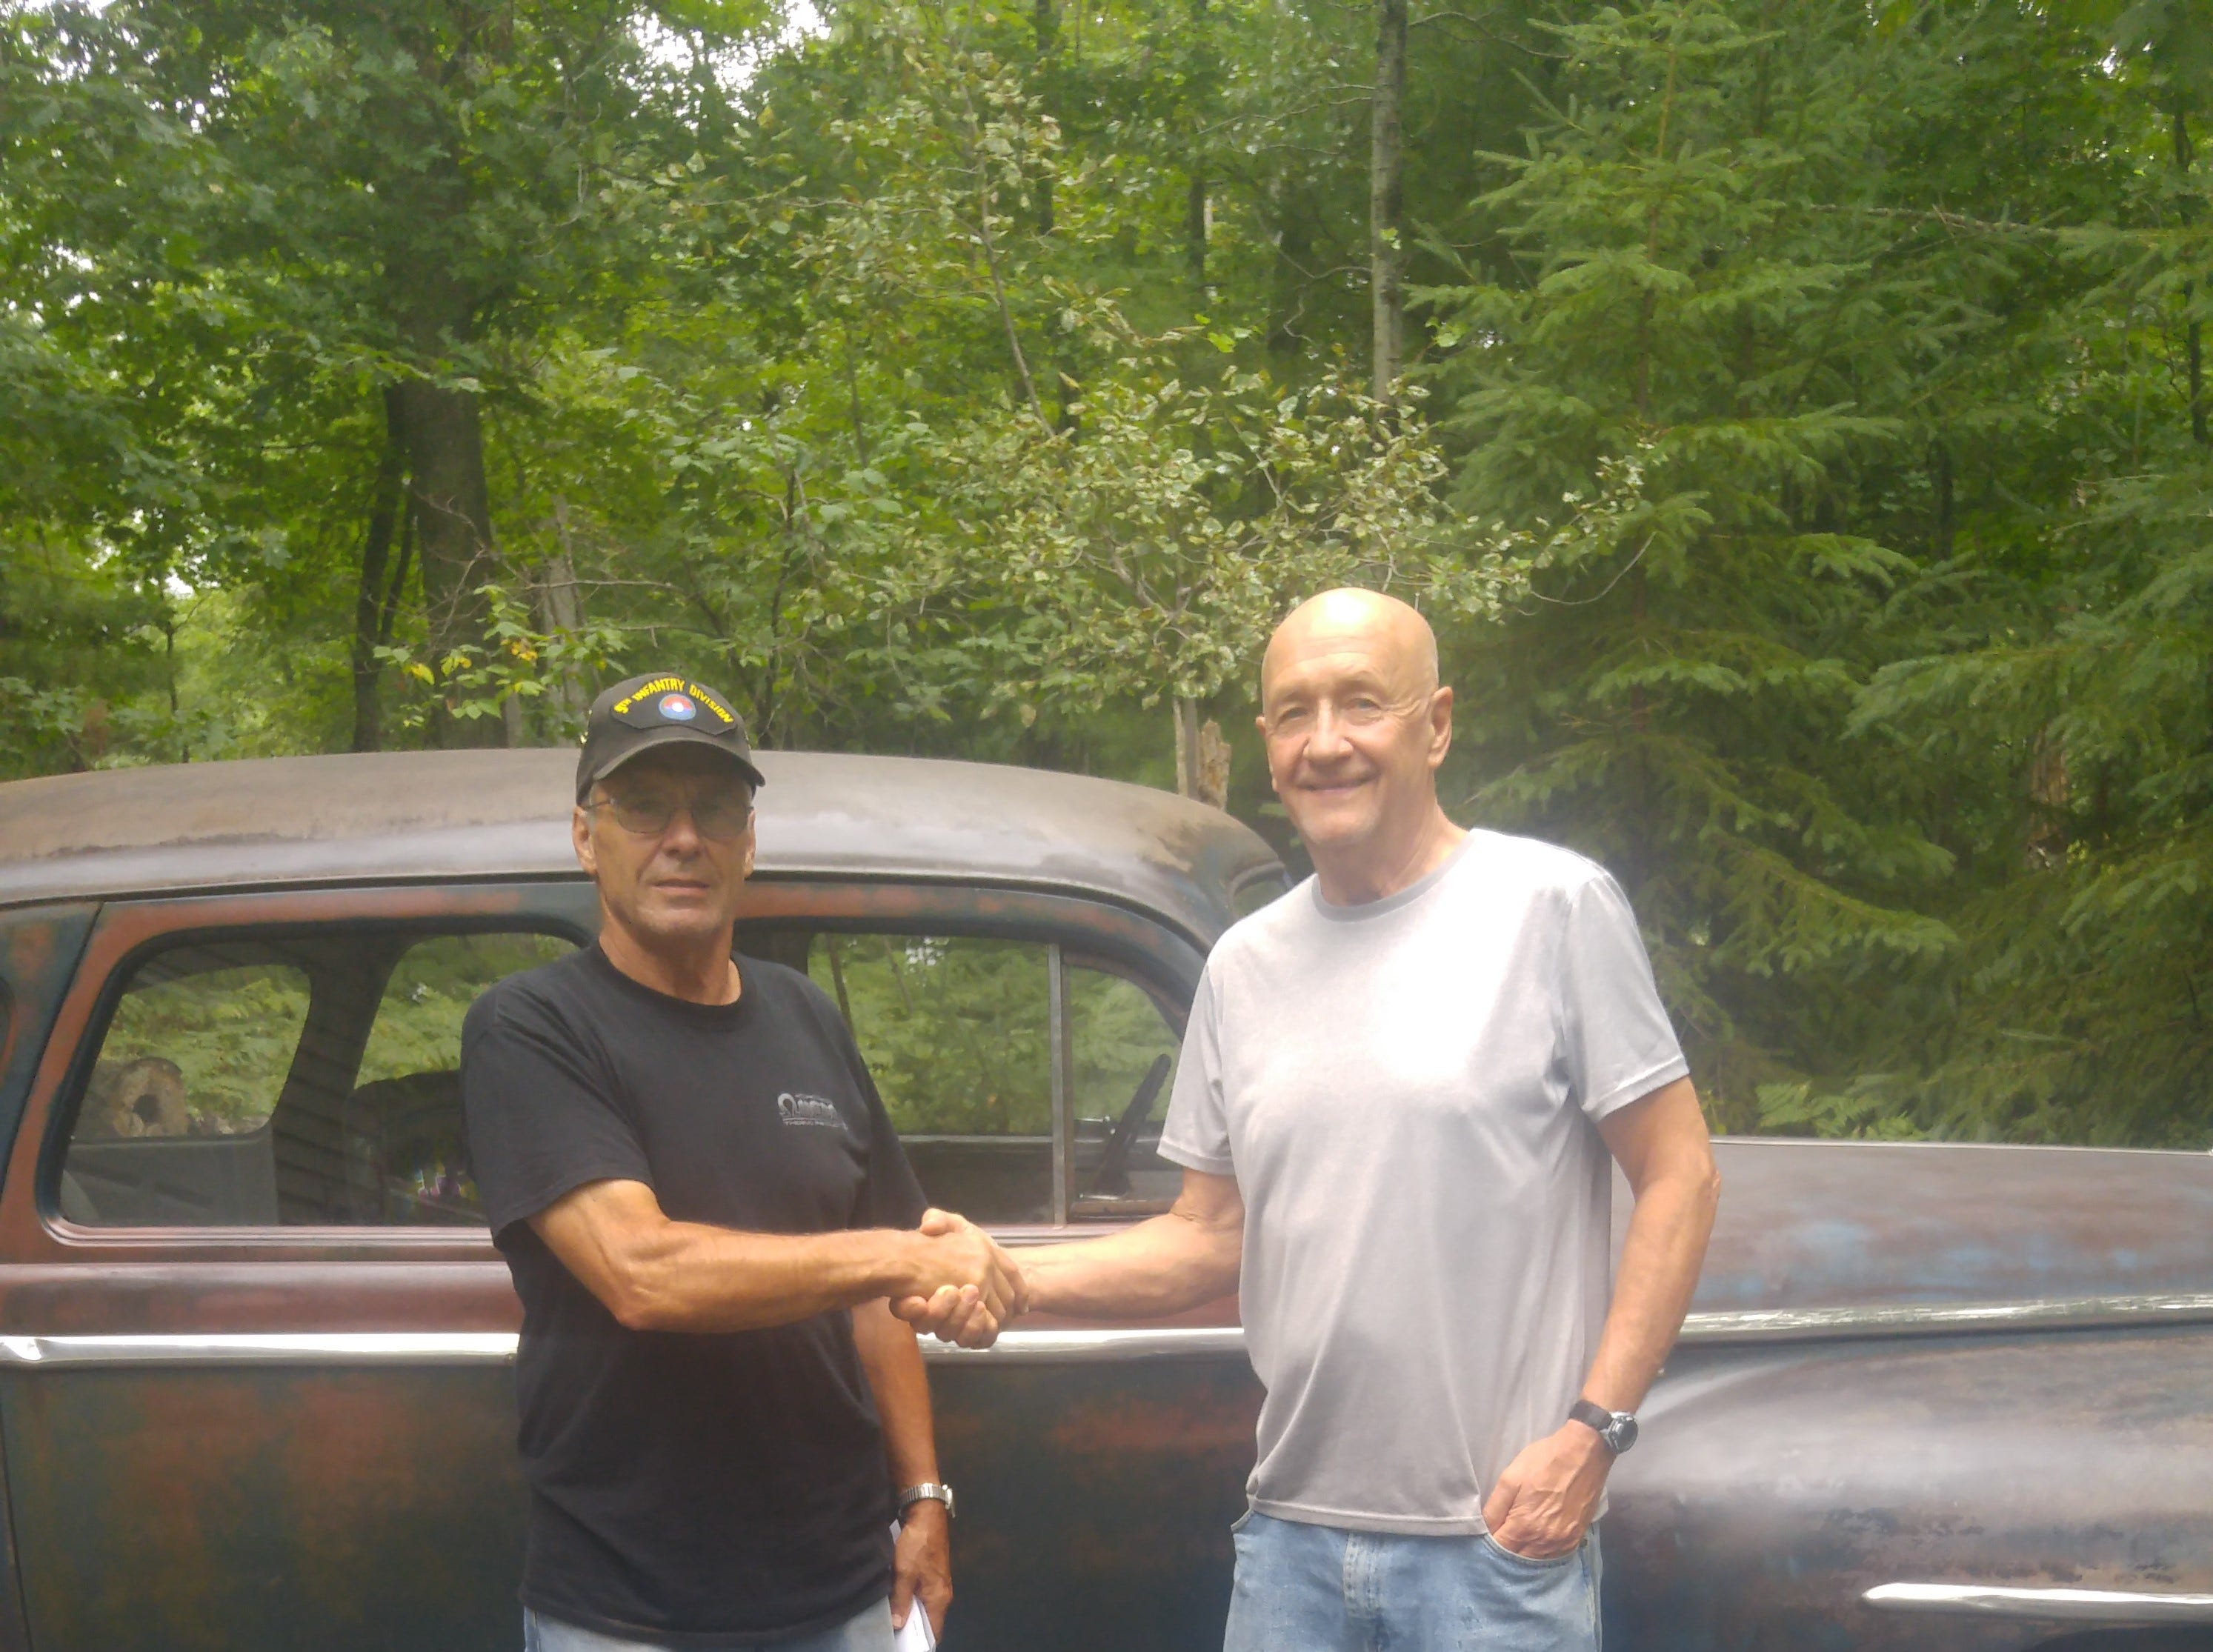 The vehicle was won by Randy Wendt (right) of Minocqua. He owned a '48 Plymouth when he was a teenager. But he didn't need the car today; he needed a more reliable, everyday driver.